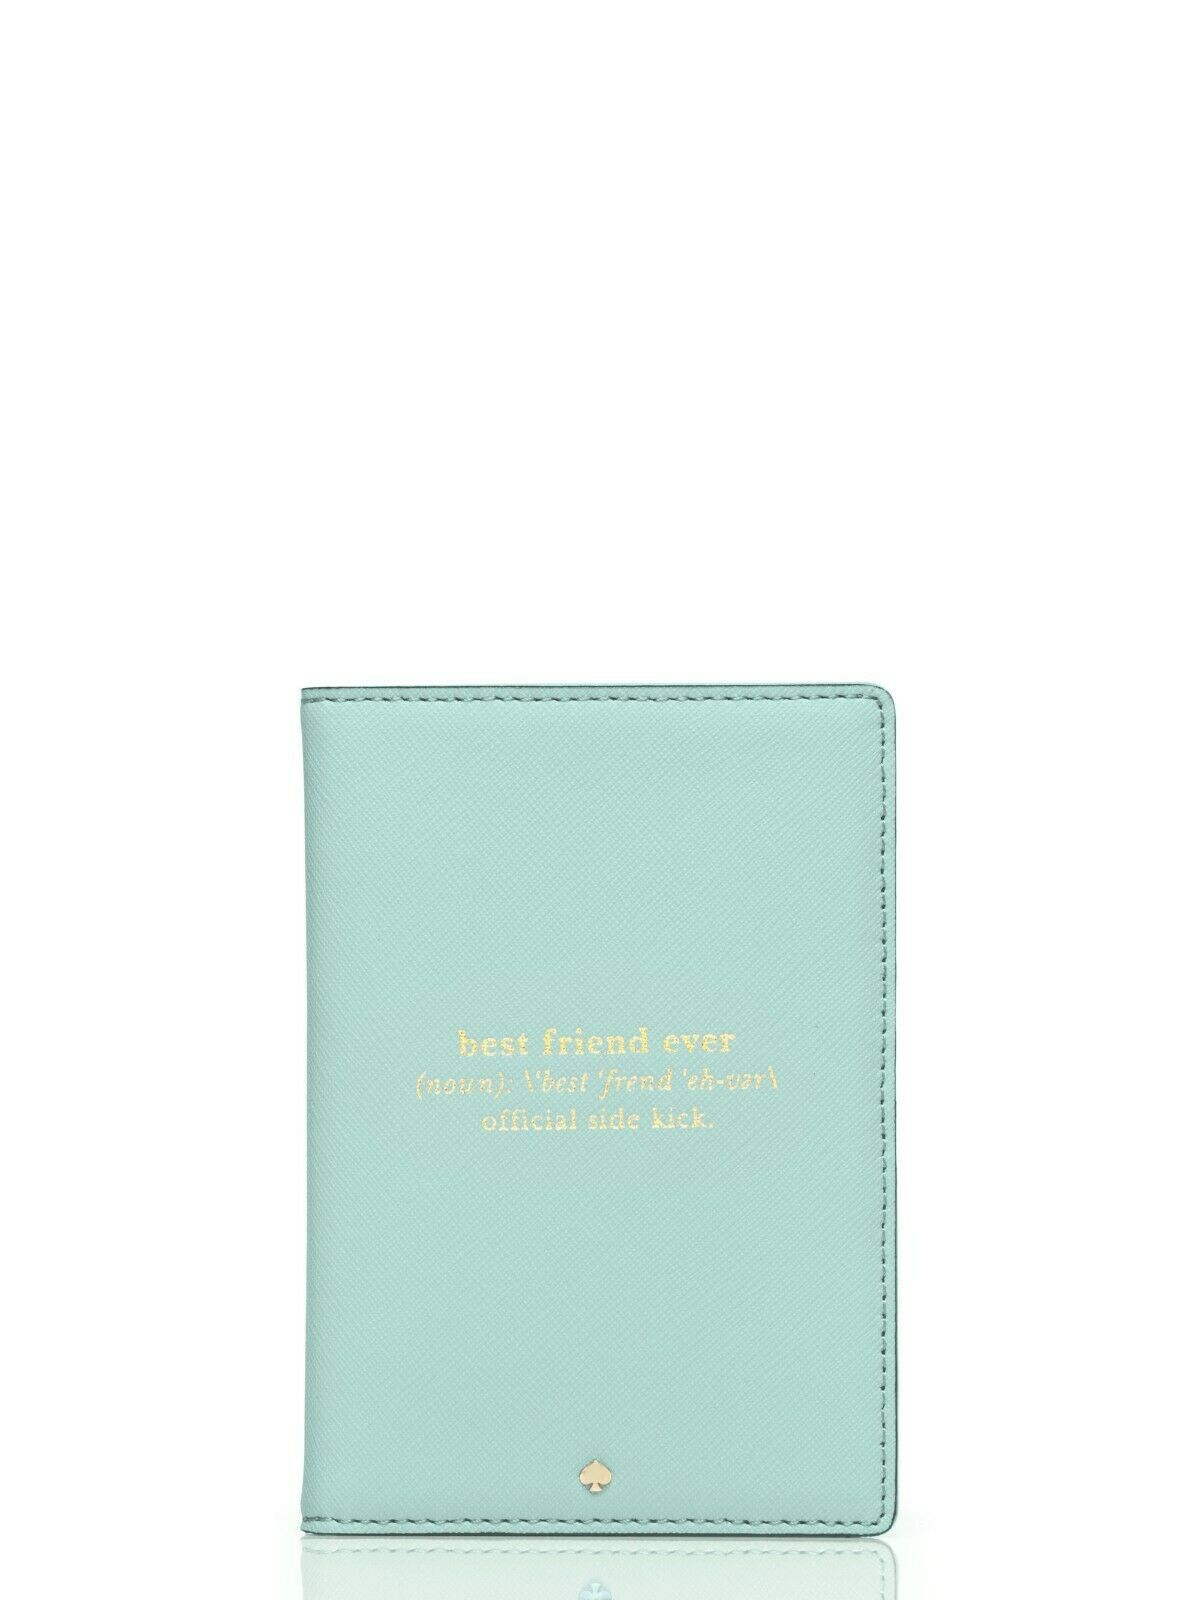 KATE SPADE PASSPORT HOLDER! Wedding Belles GRACE BLUE Best Friends Forever!